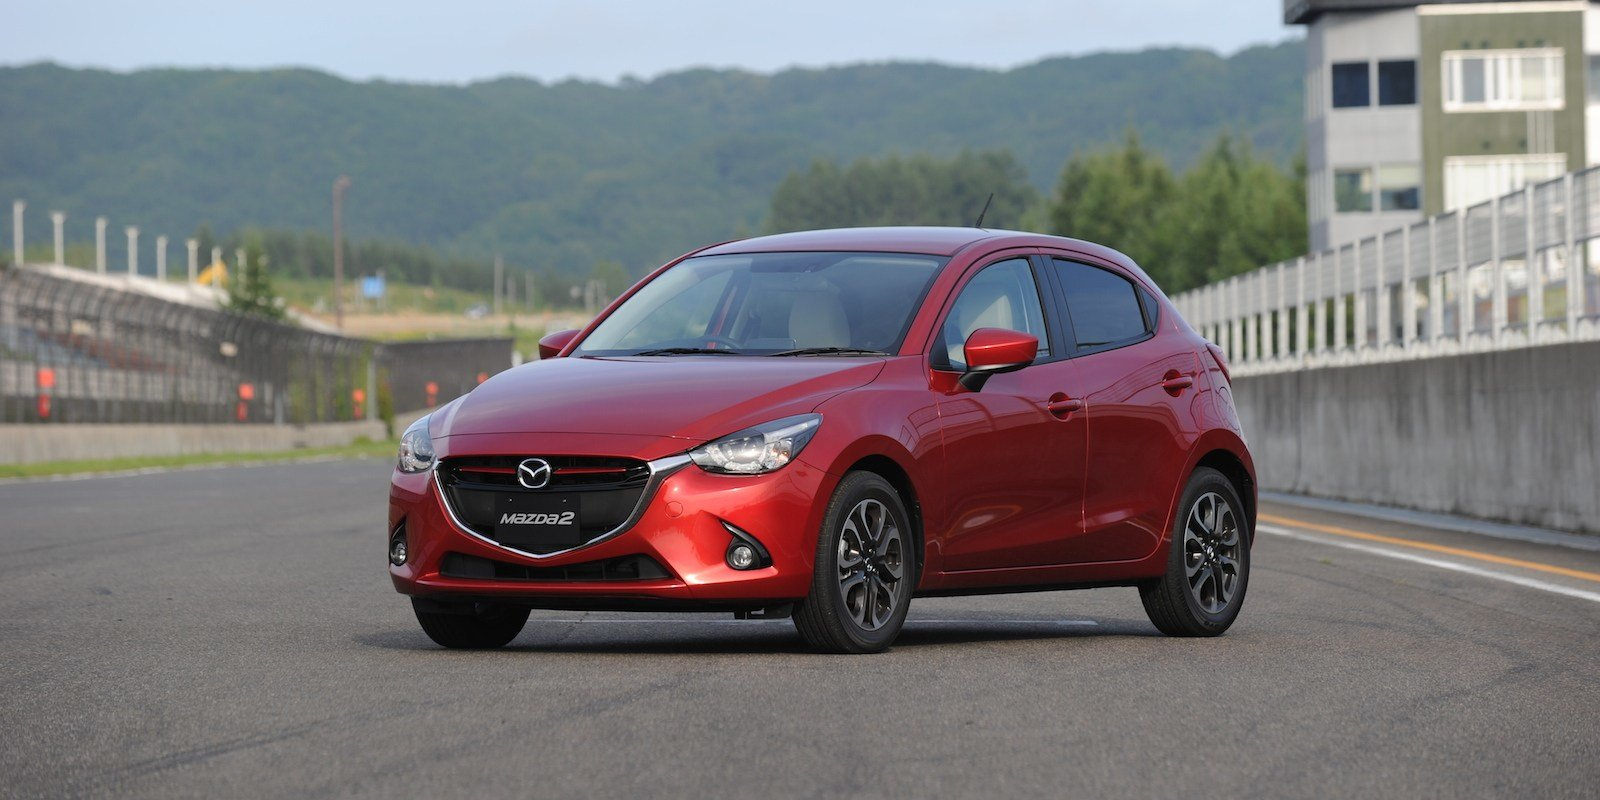 Latest 2015 Mazda 2 34 Cool Car Wallpaper Free Download